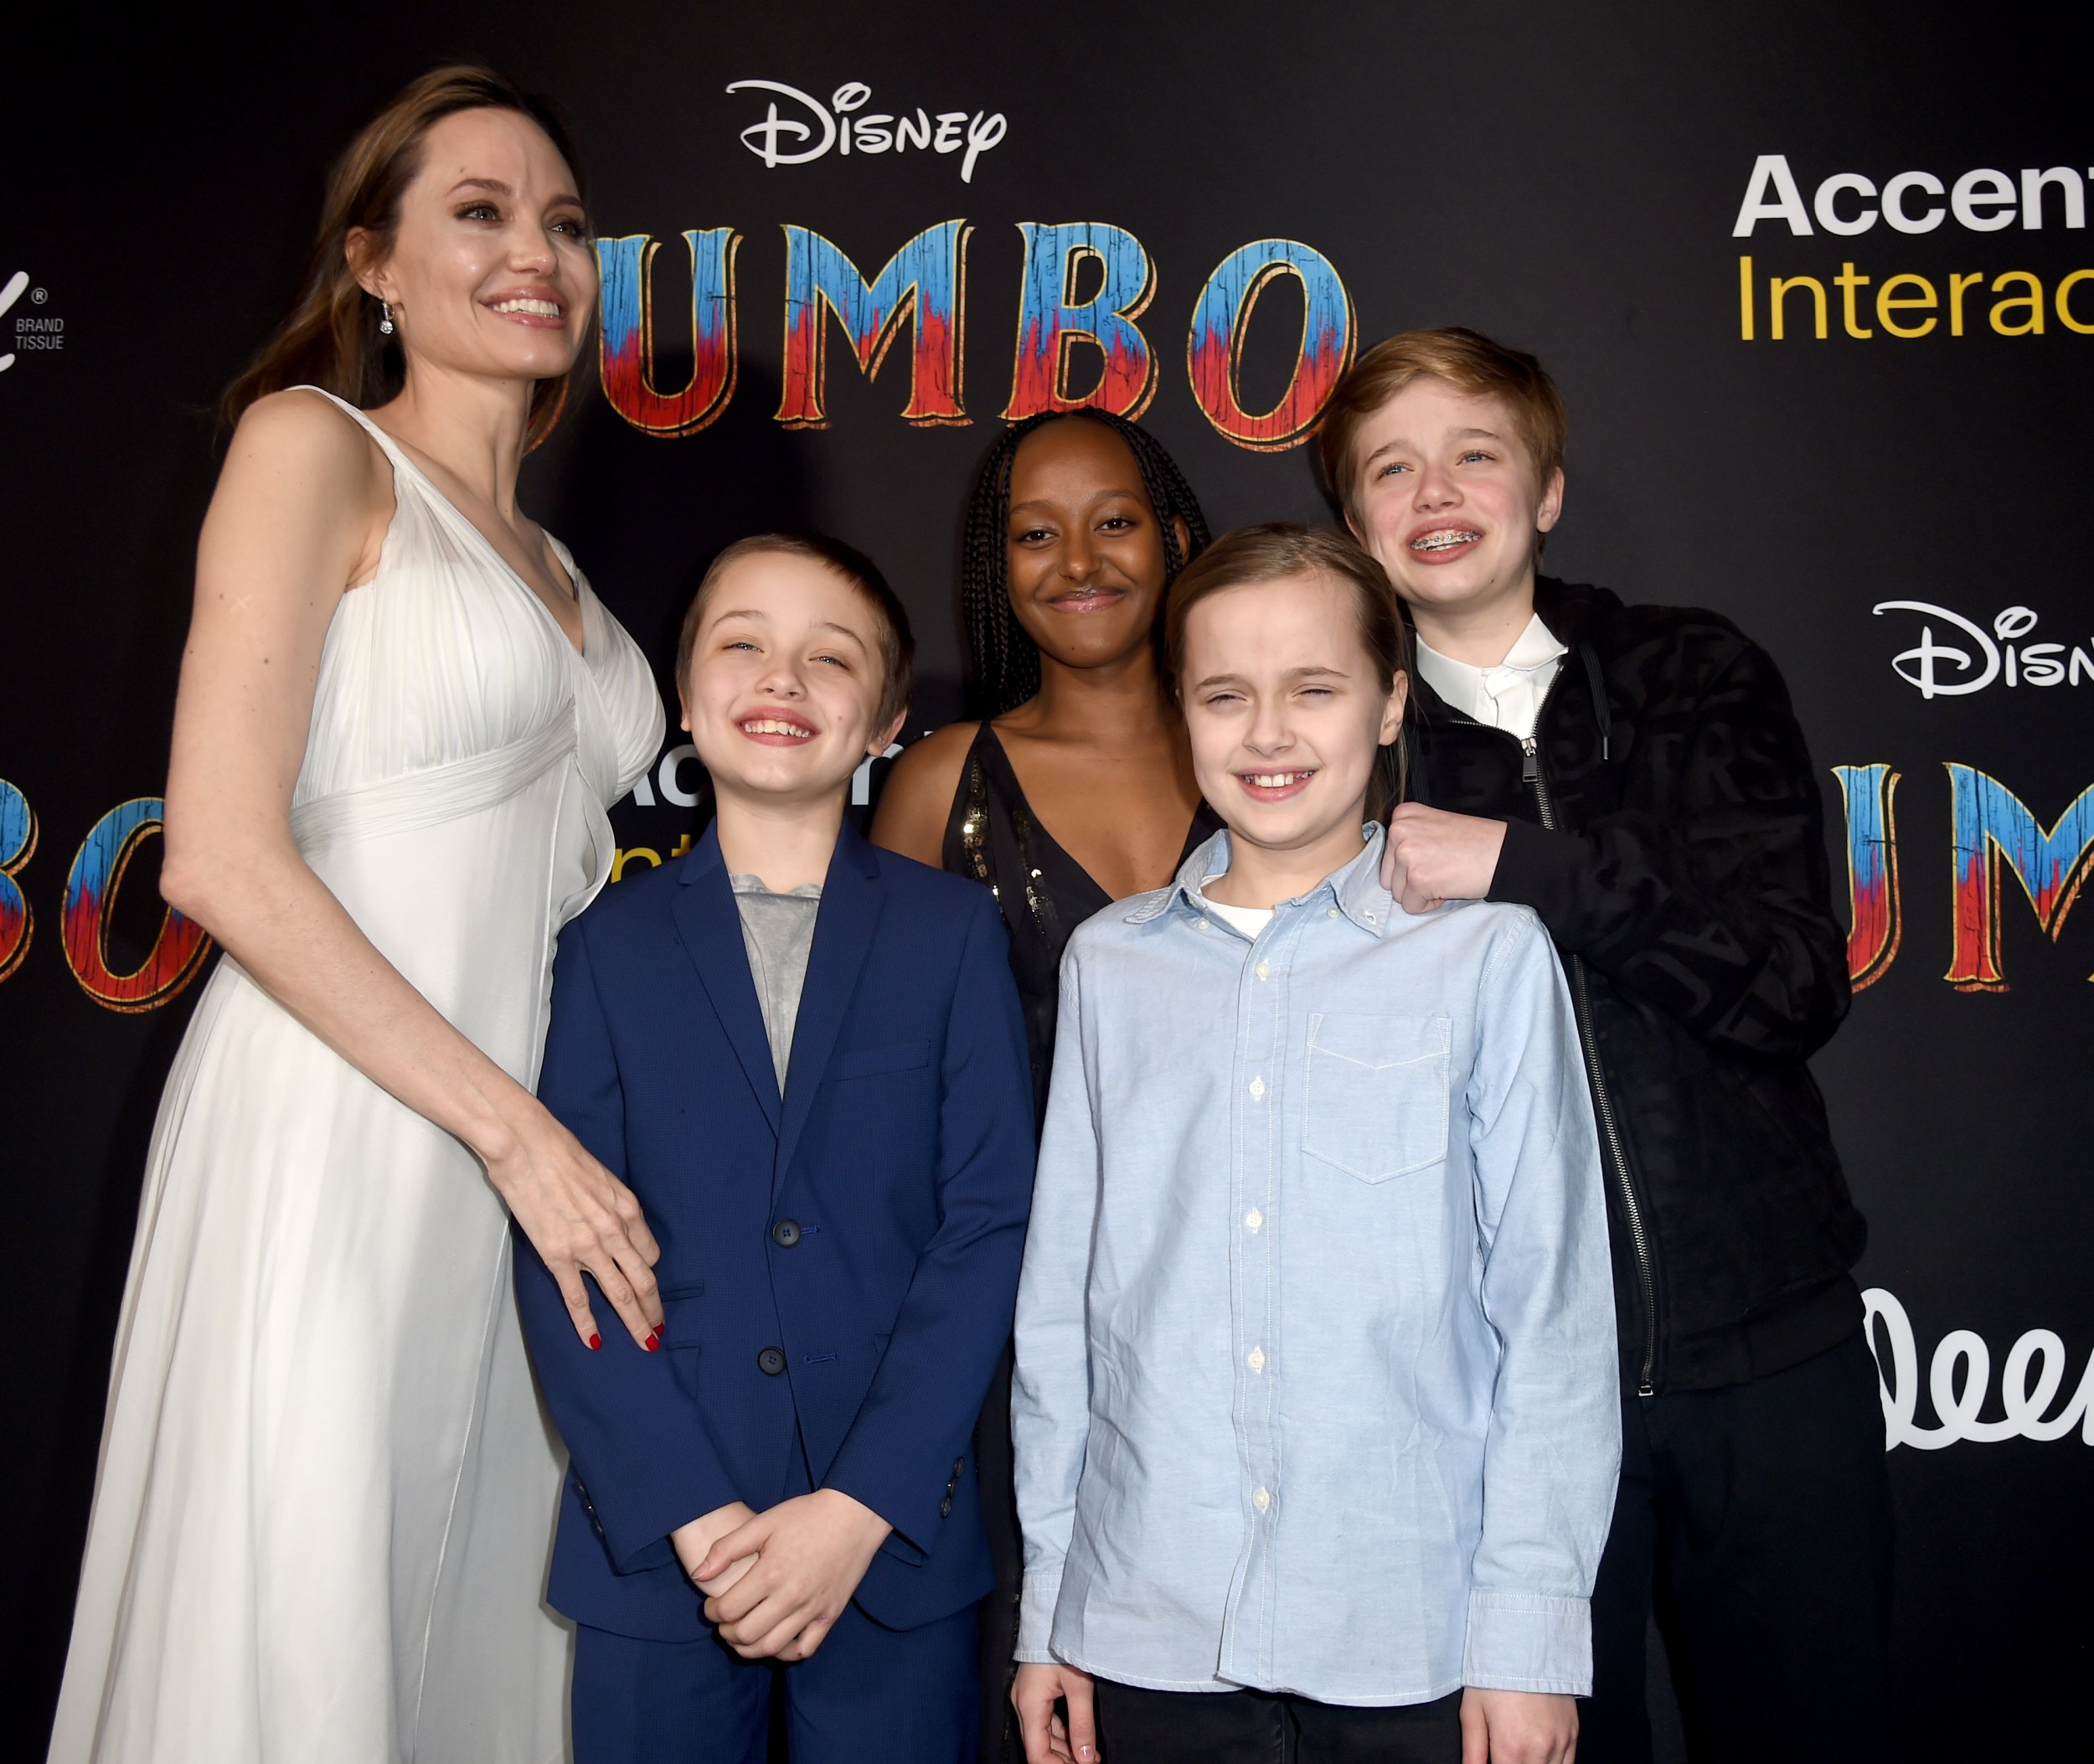 Angelina Jolie and Brad Pitt's children hang out with A-list stars at Dumbo premiere